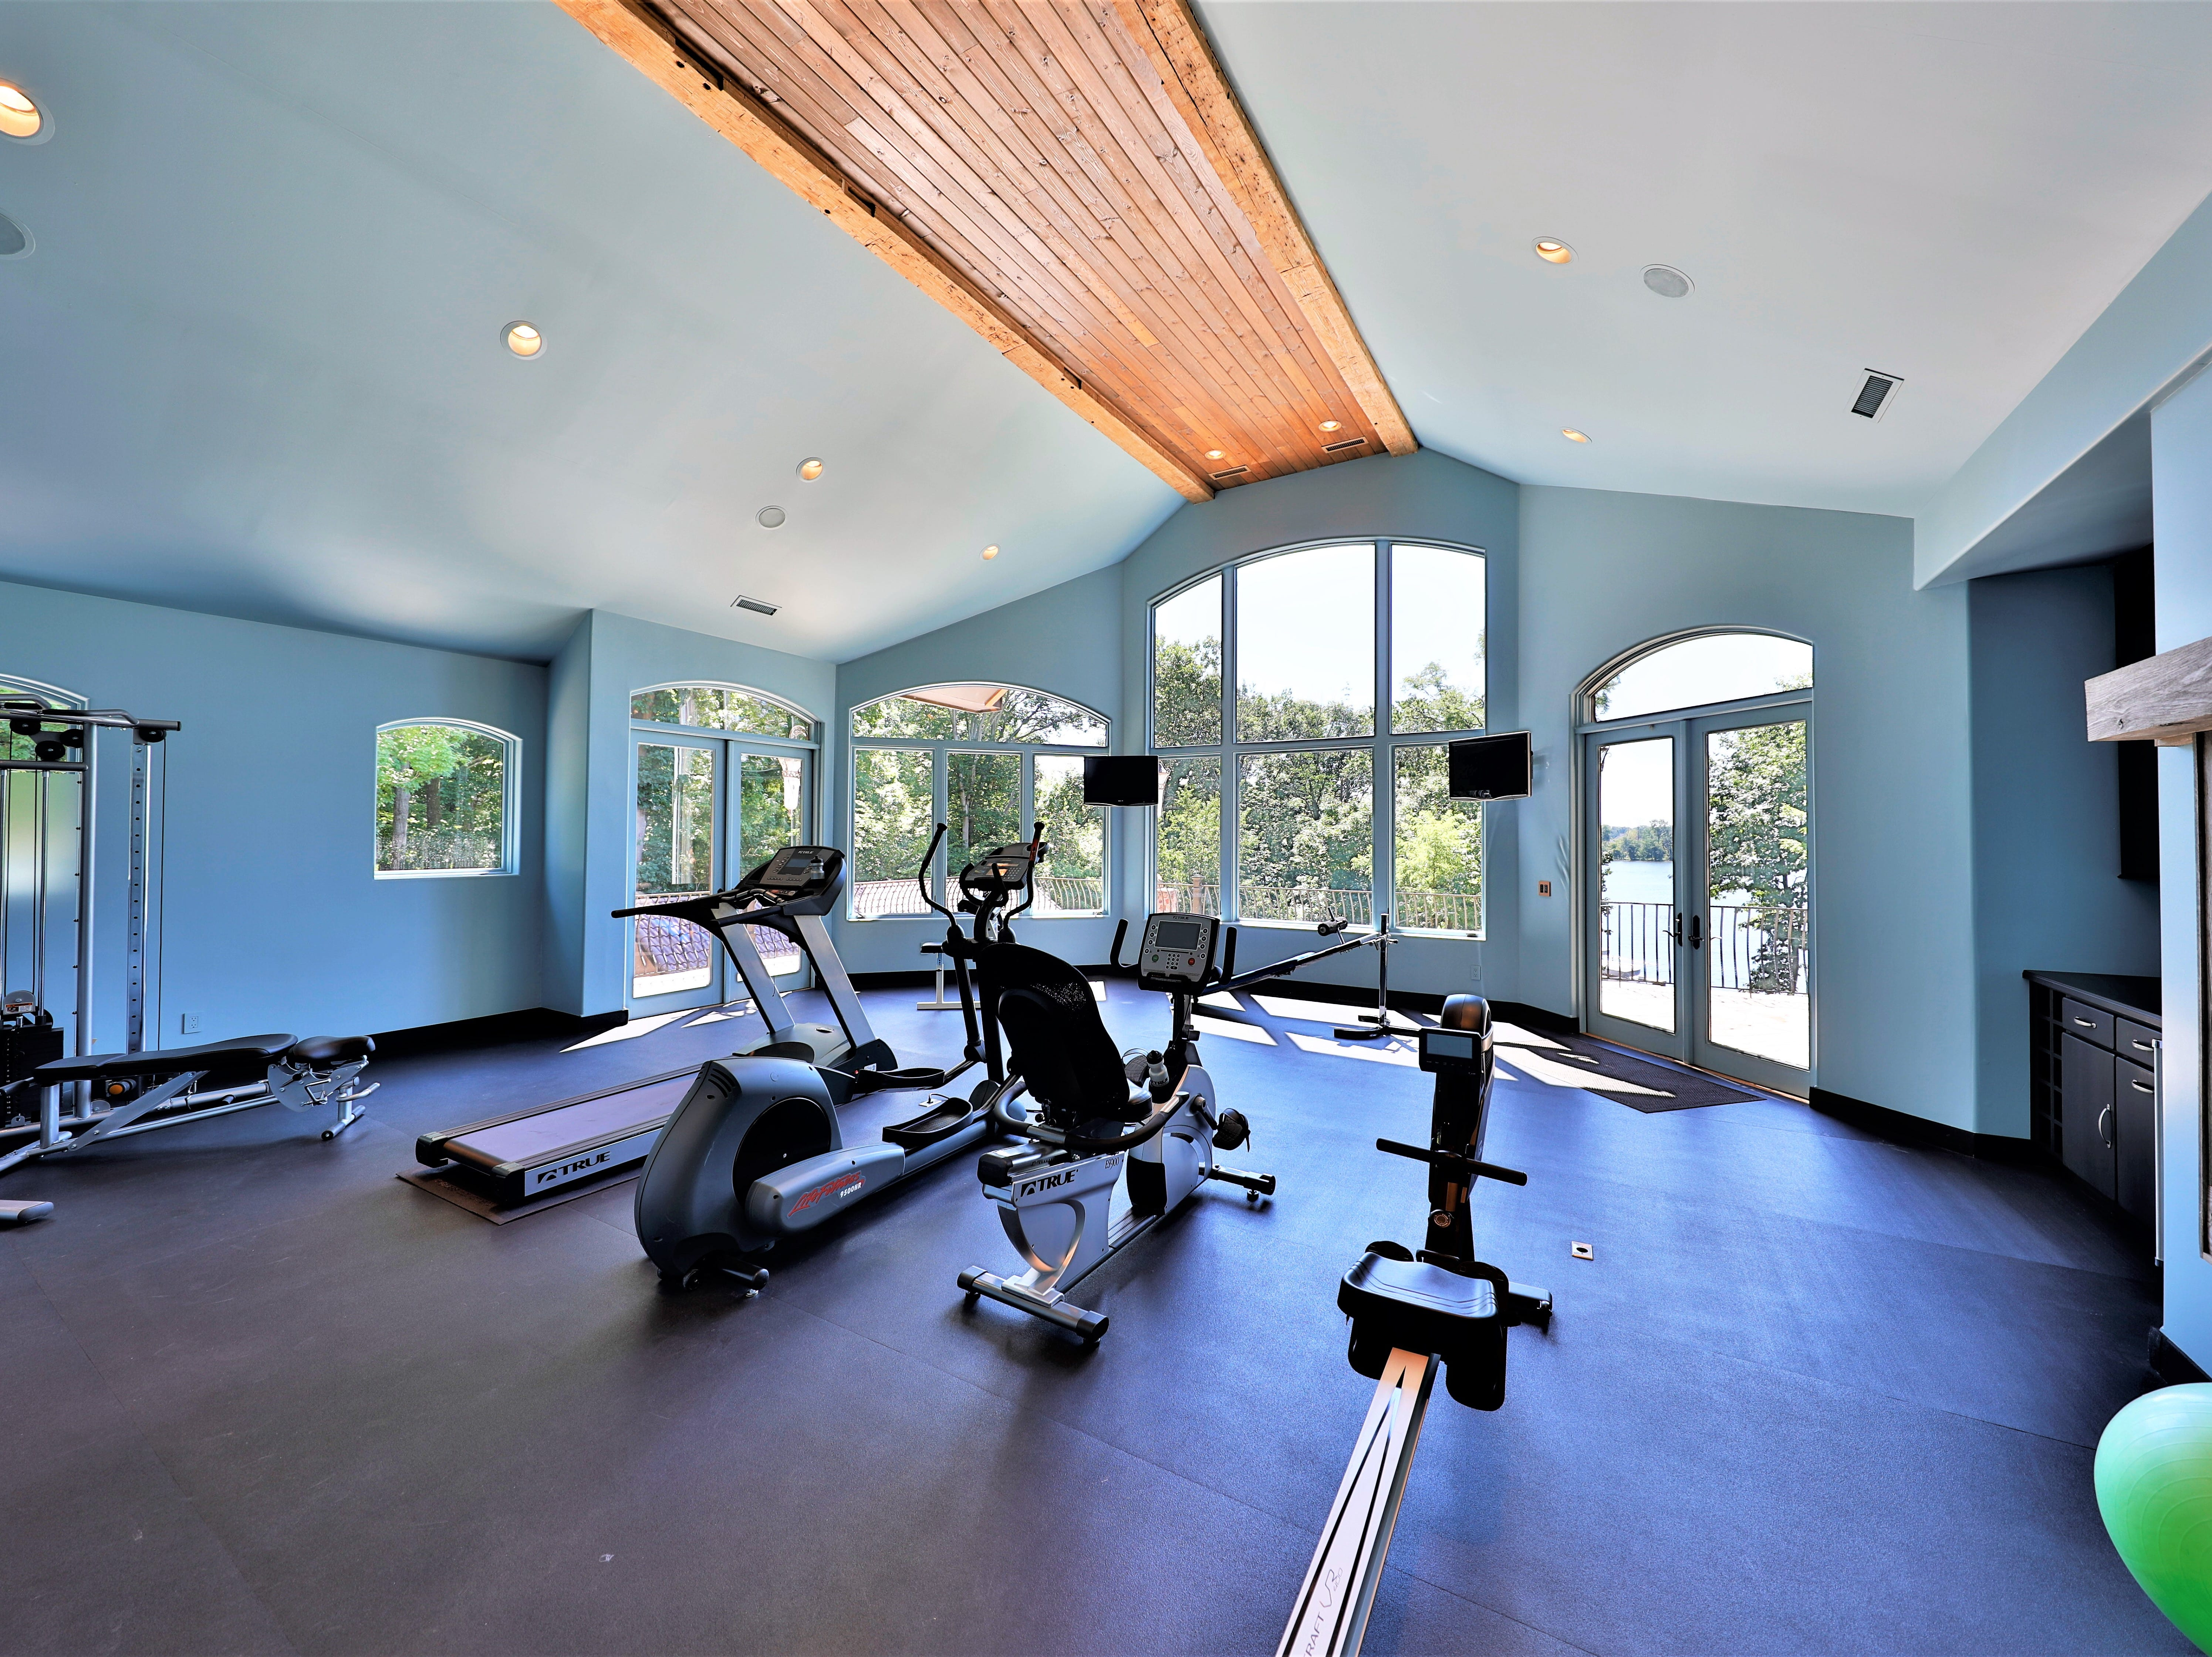 A workout room on the second floor.